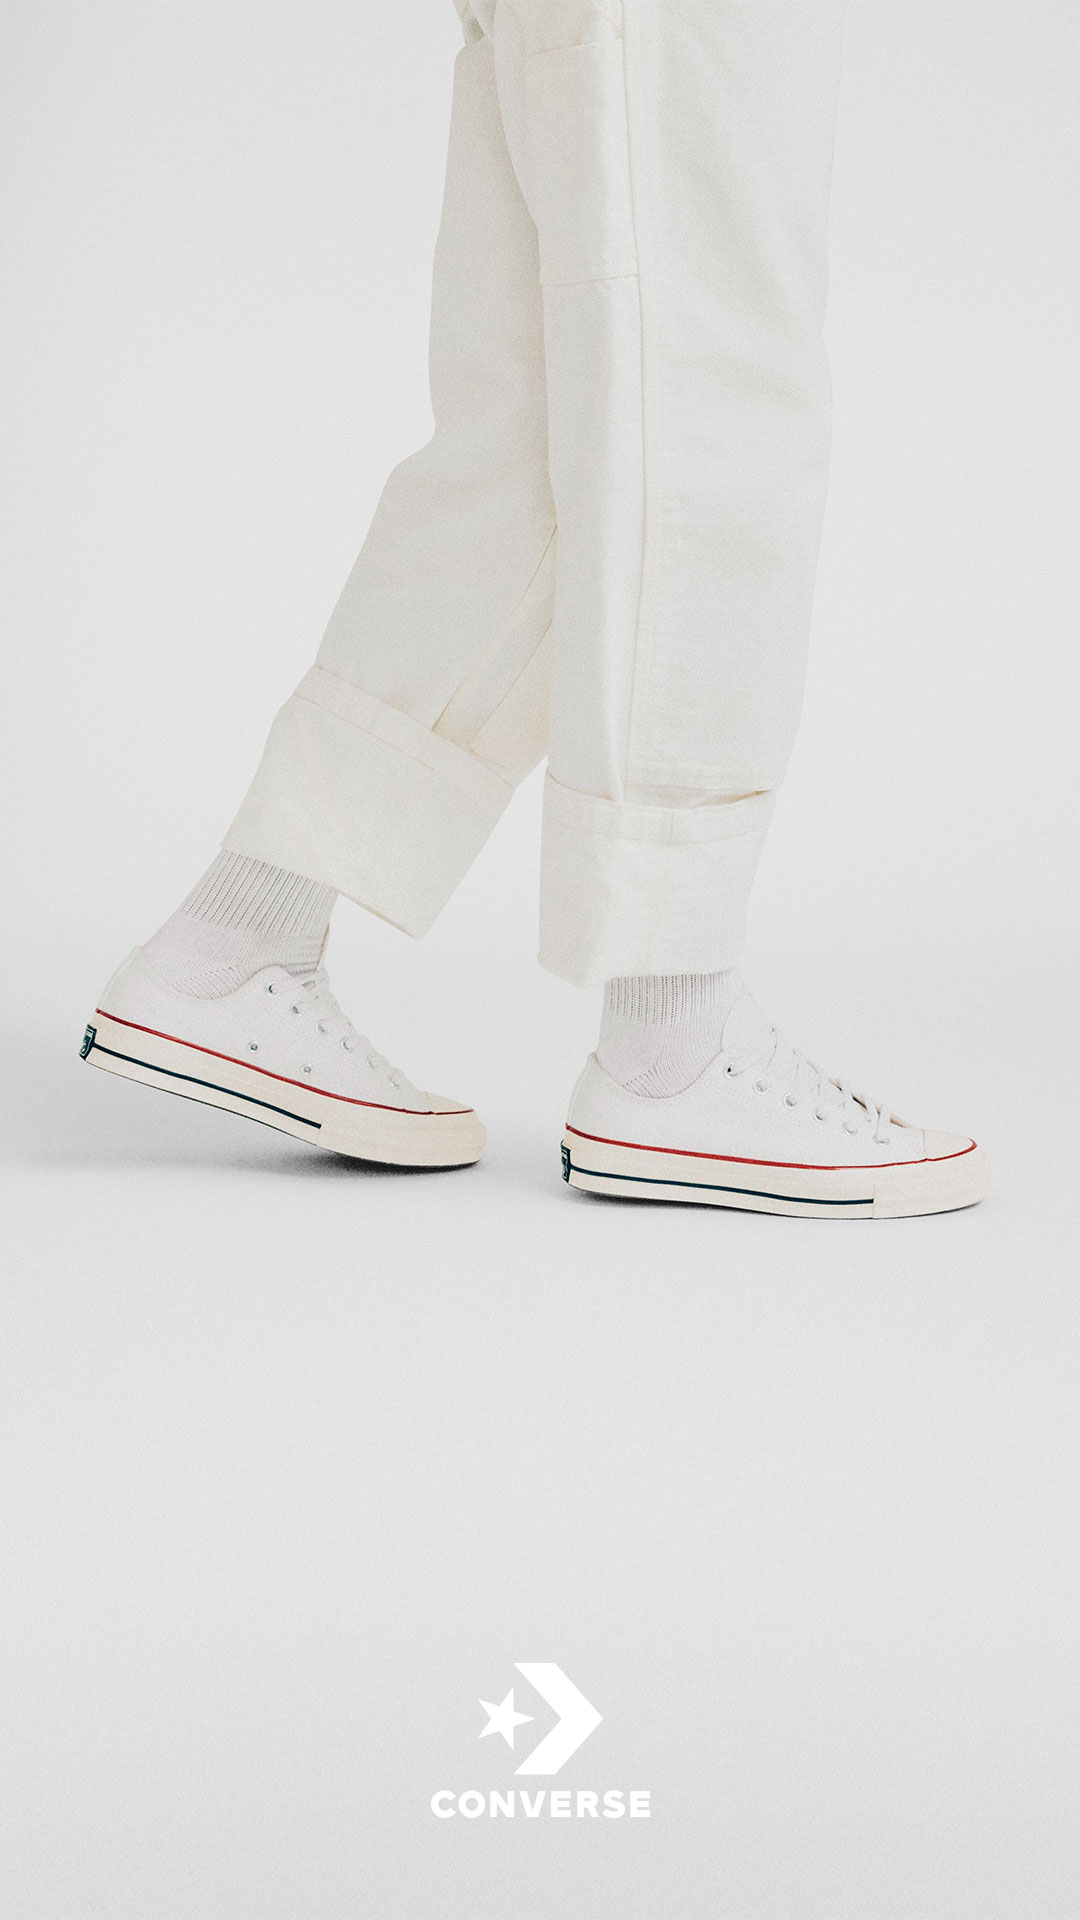 CONVERSE CHUCK TAYLOR ALL STAR 70 C162065